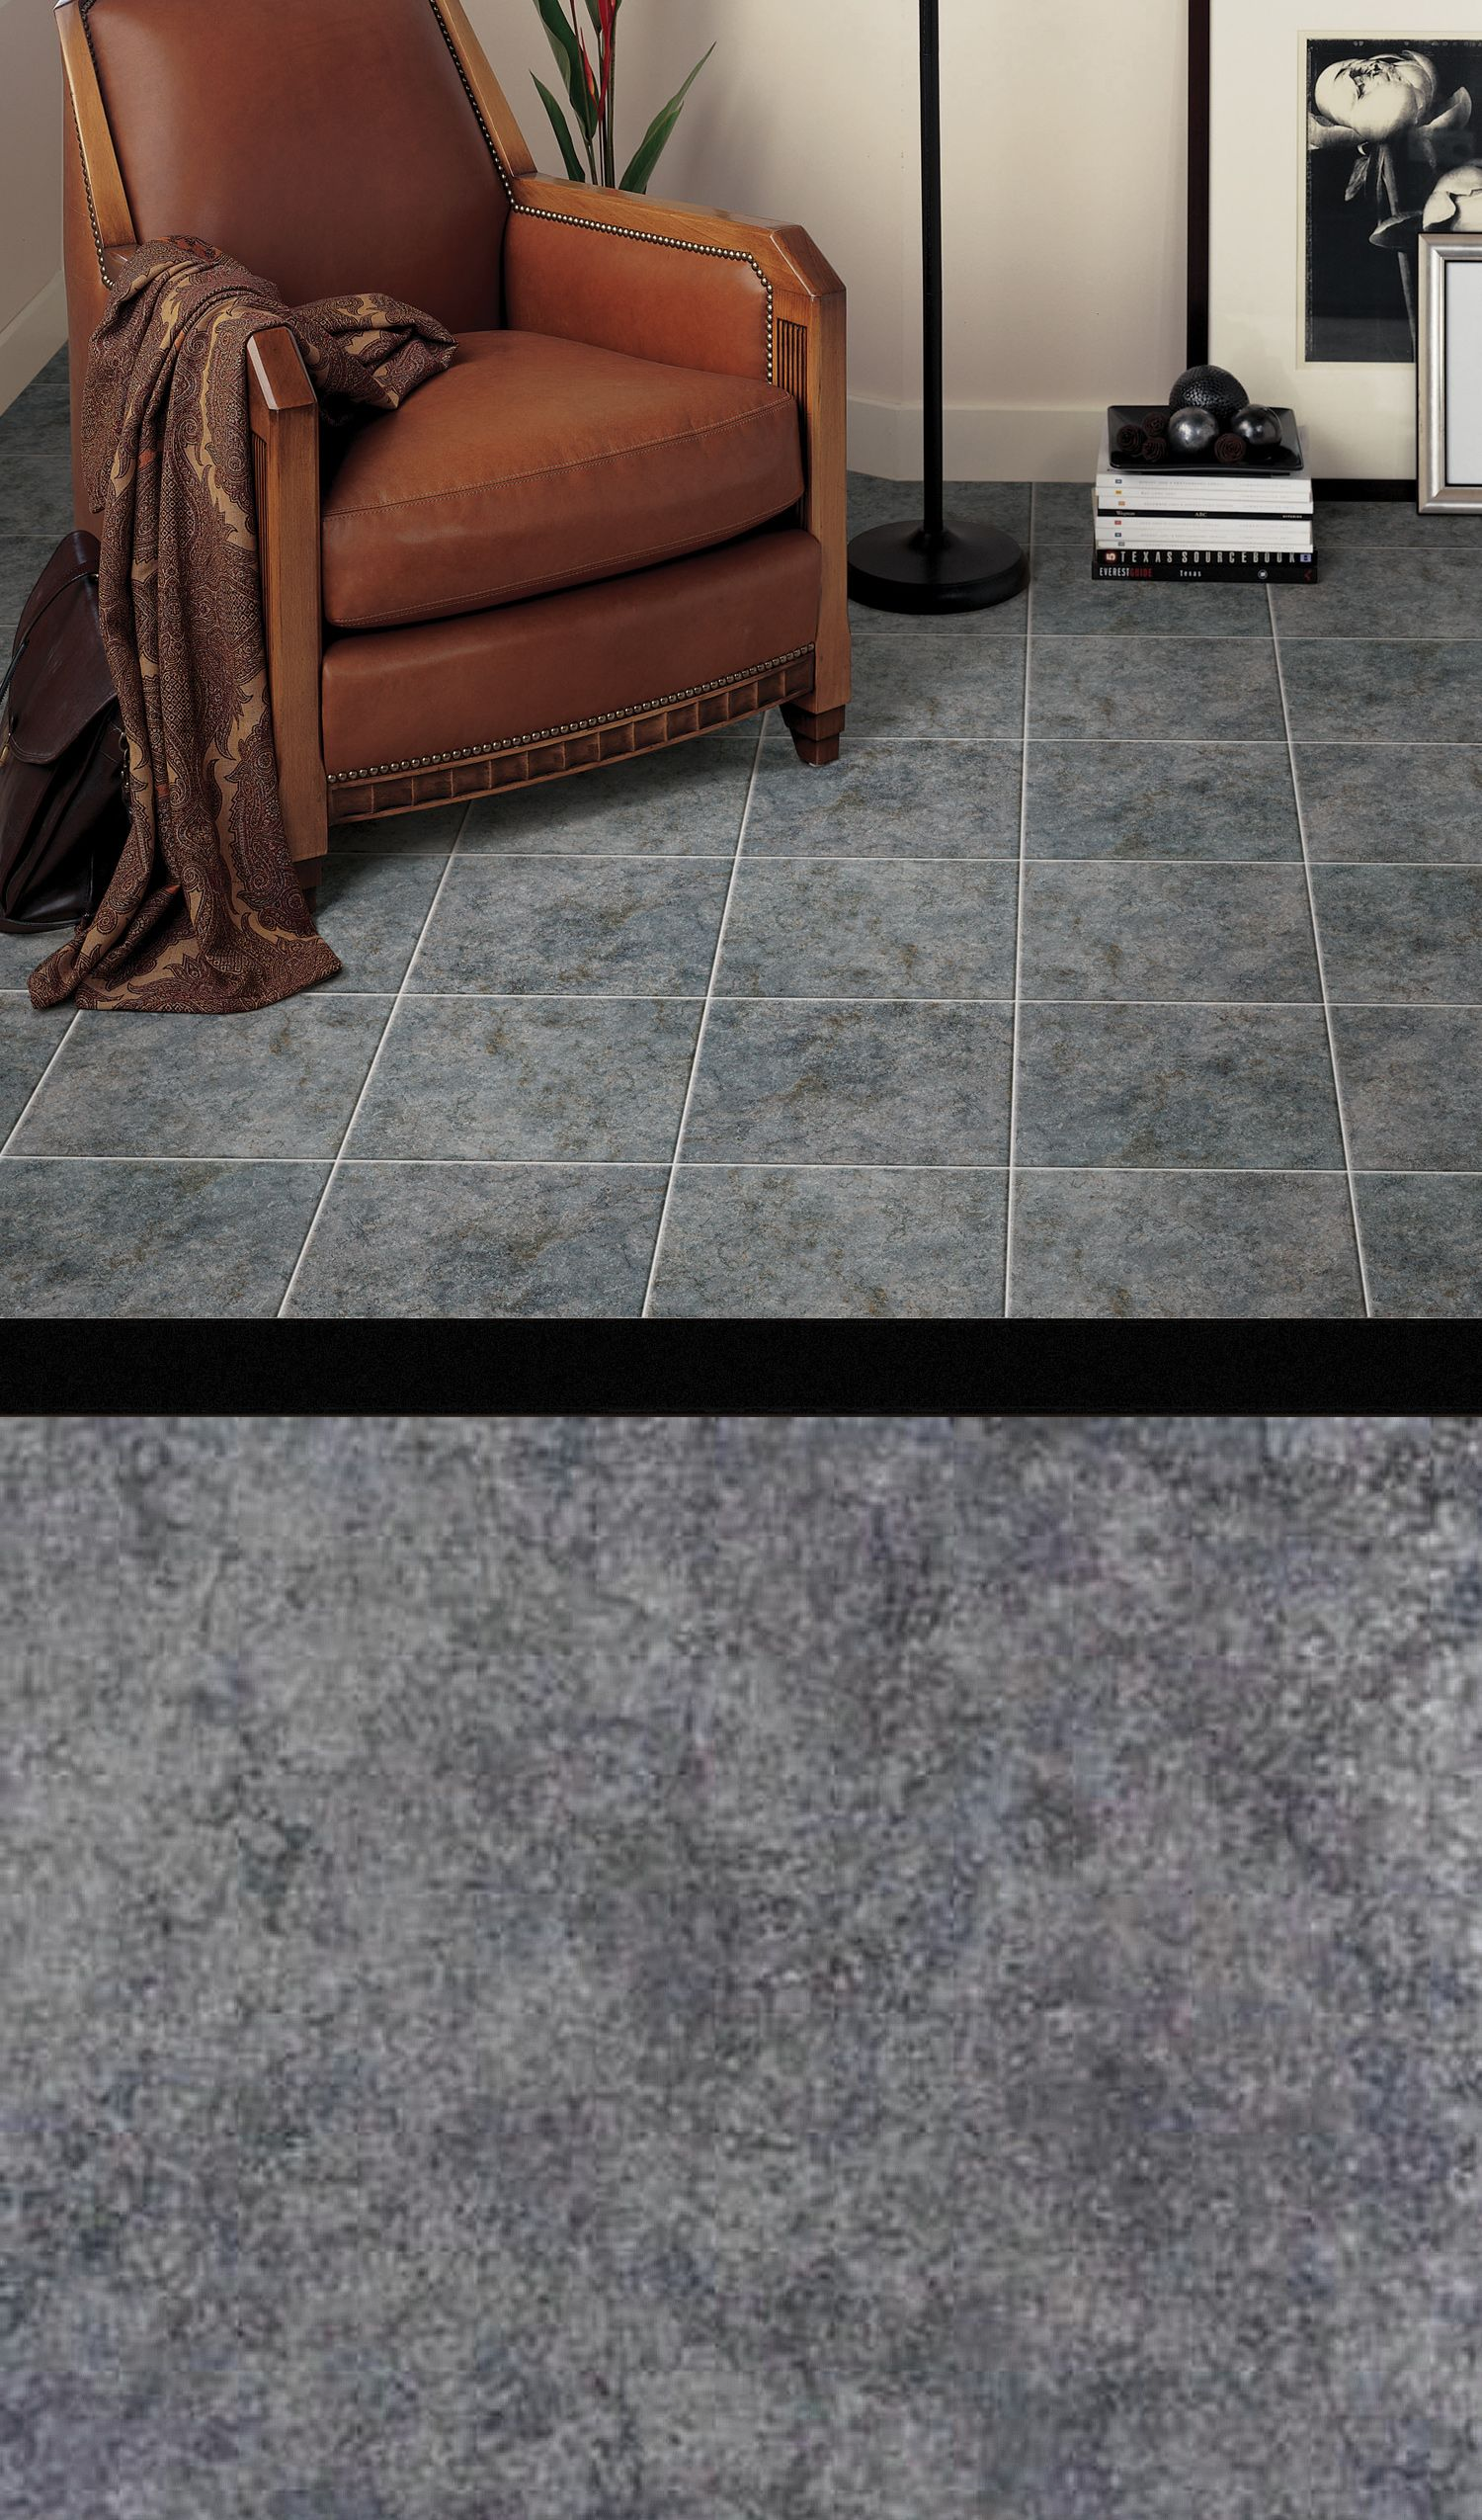 How To Paint Vinyl Floors Long Lasting Results Painted Vinyl Floors Vinyl Flooring Flooring